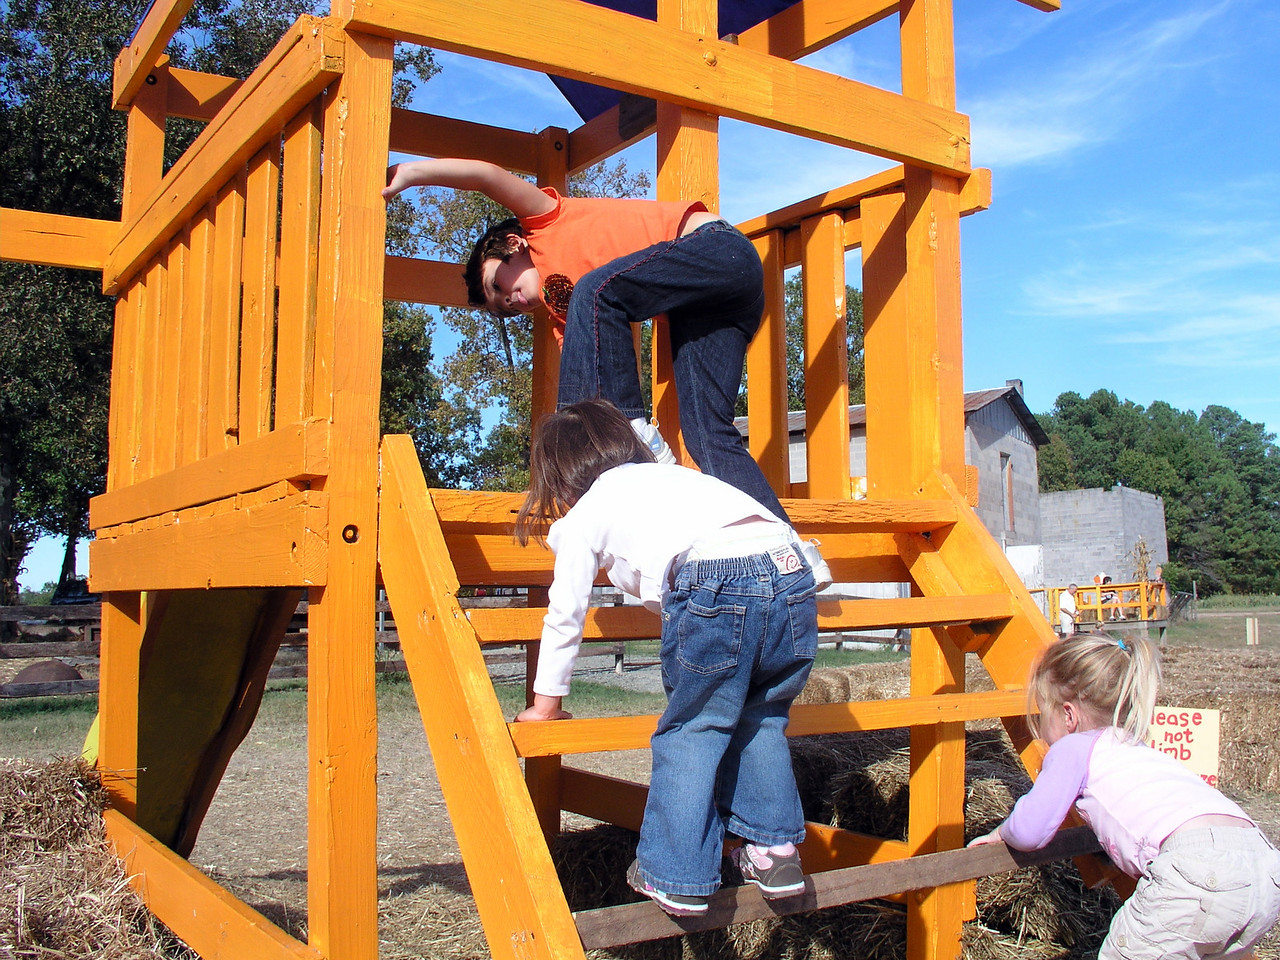 Everyone loves this play structure.